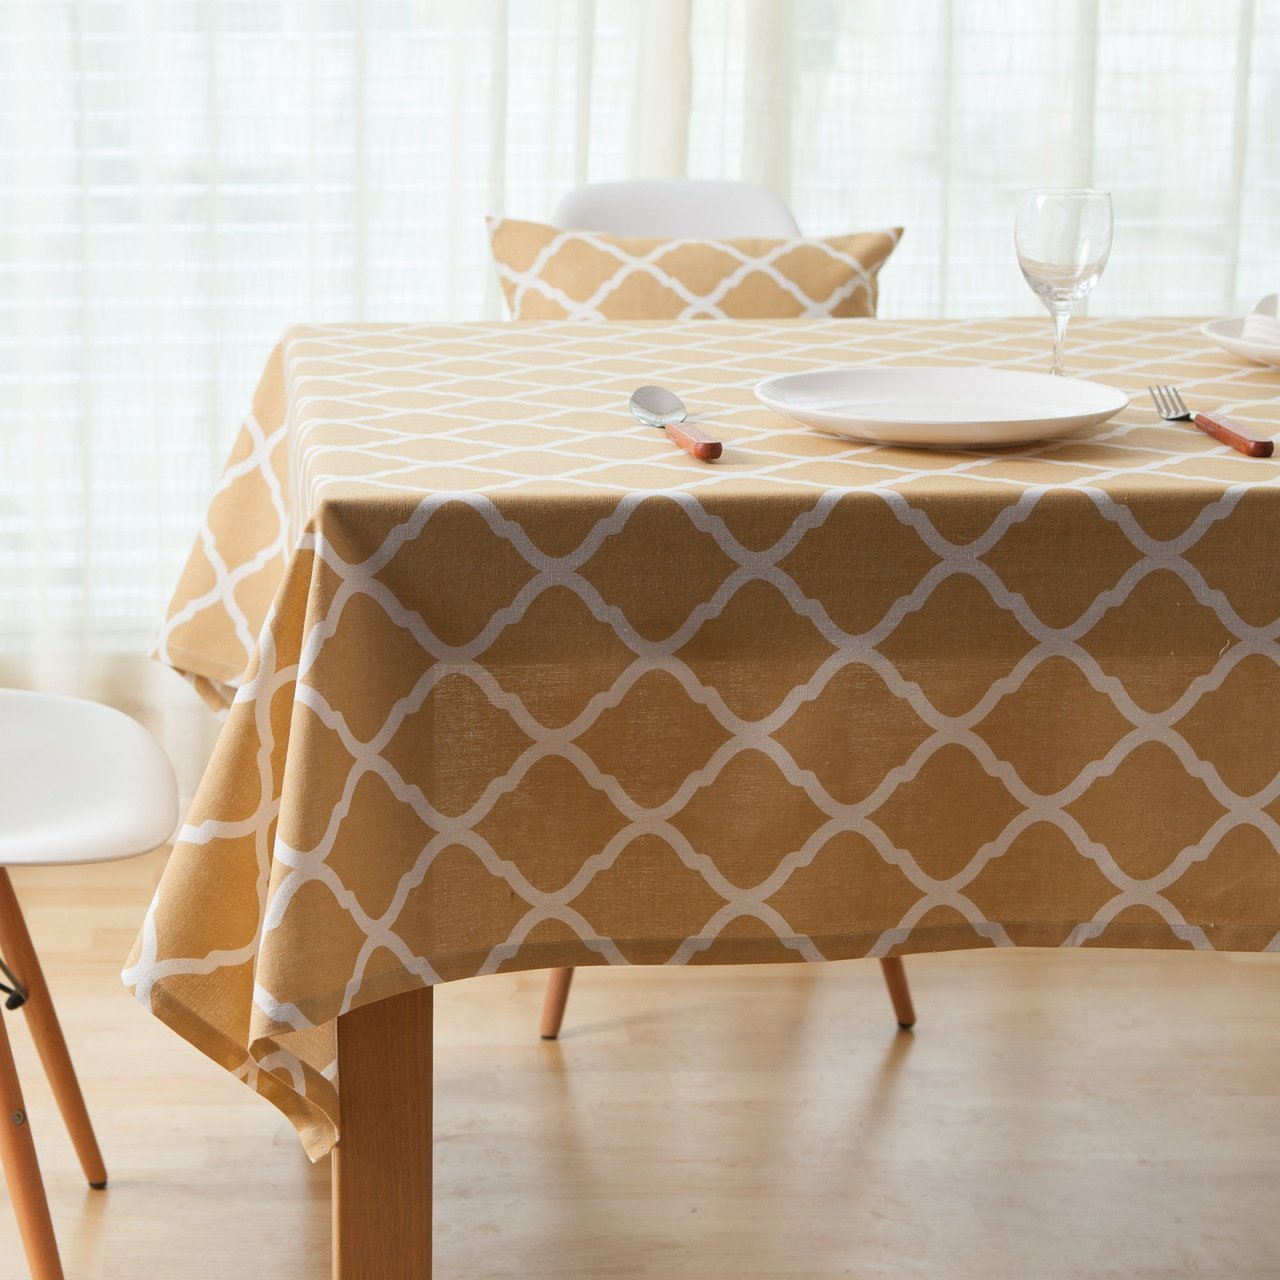 Oyeahbridal Gingham Cotton Linen Tablecloth Moroccan Pattern for Dining Kitchen Living Room Decorative Table Cover Square Grey 55X55 Inch